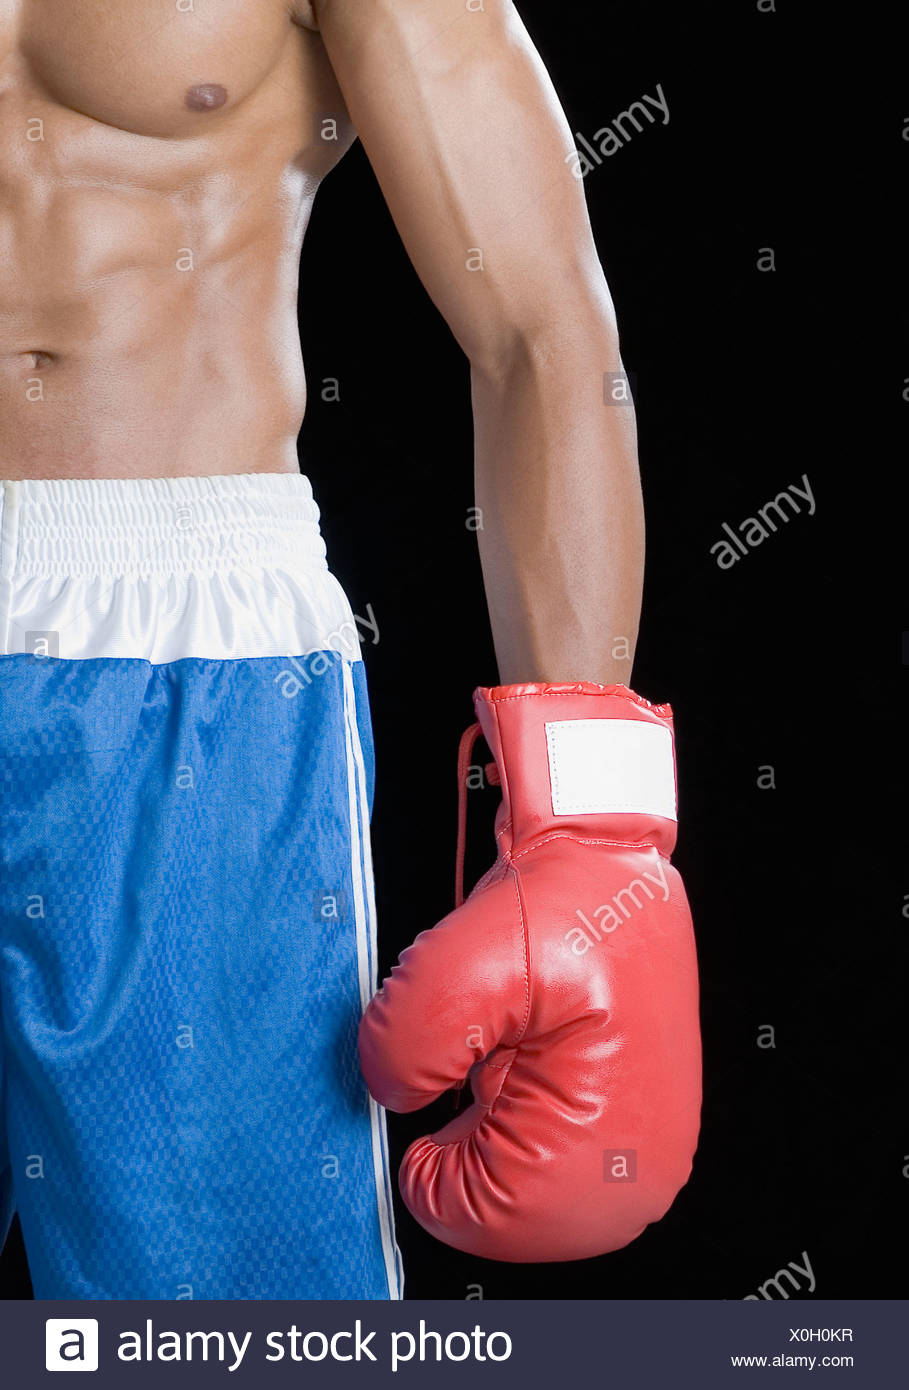 Mid section view of a boxer wearing a boxing glove - Stock Image